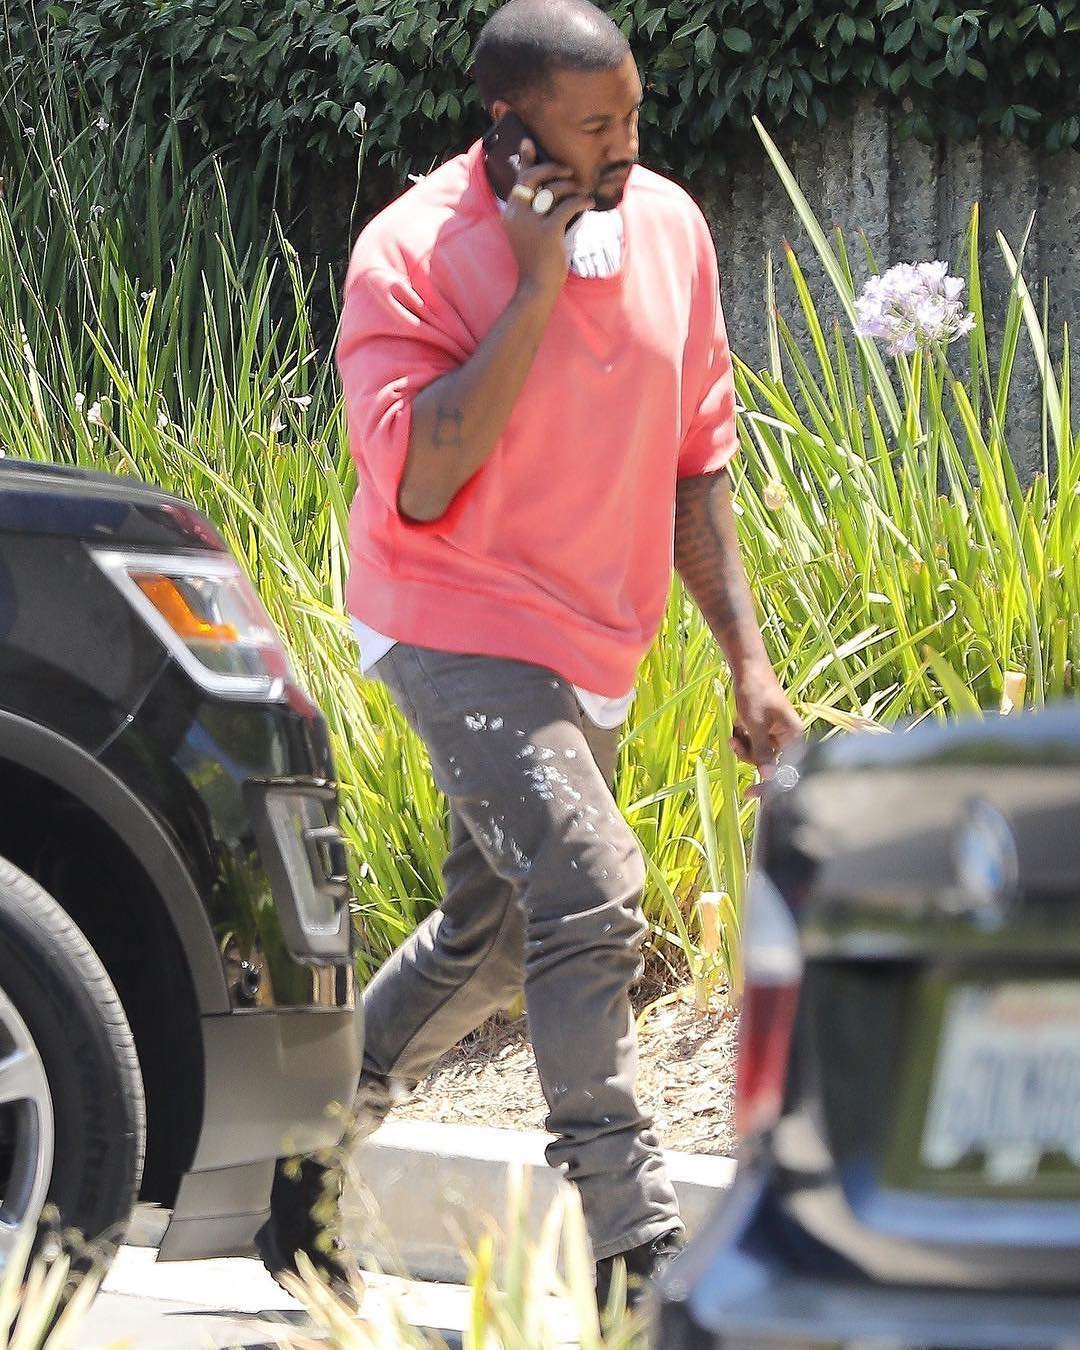 SPOTTED: Kanye West wearing vintage Helmut Lang jeans and Yeezy Season boots